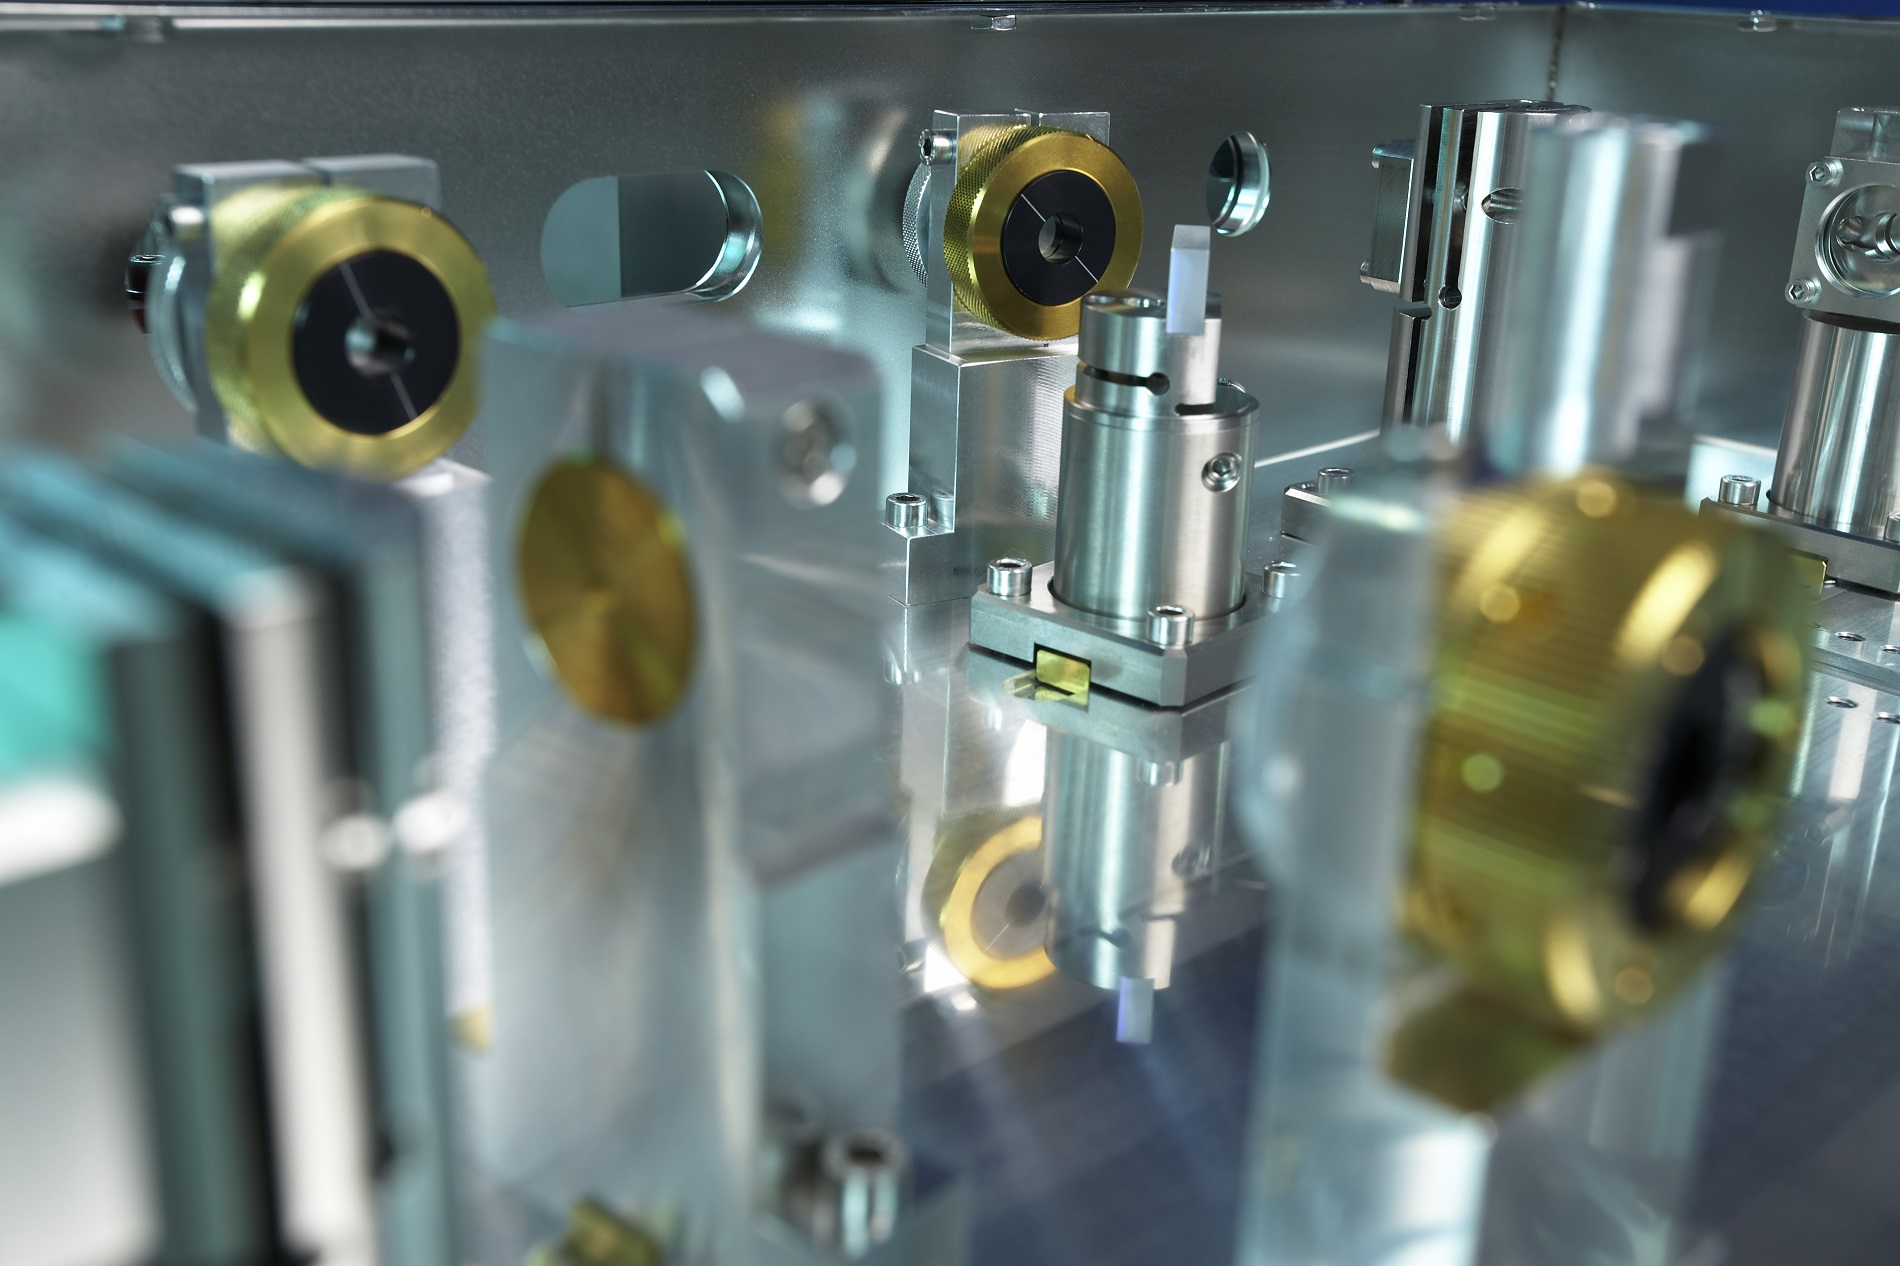 A glimpse inside an ultra-short pulse laser from TRUMPF's TruMicro range